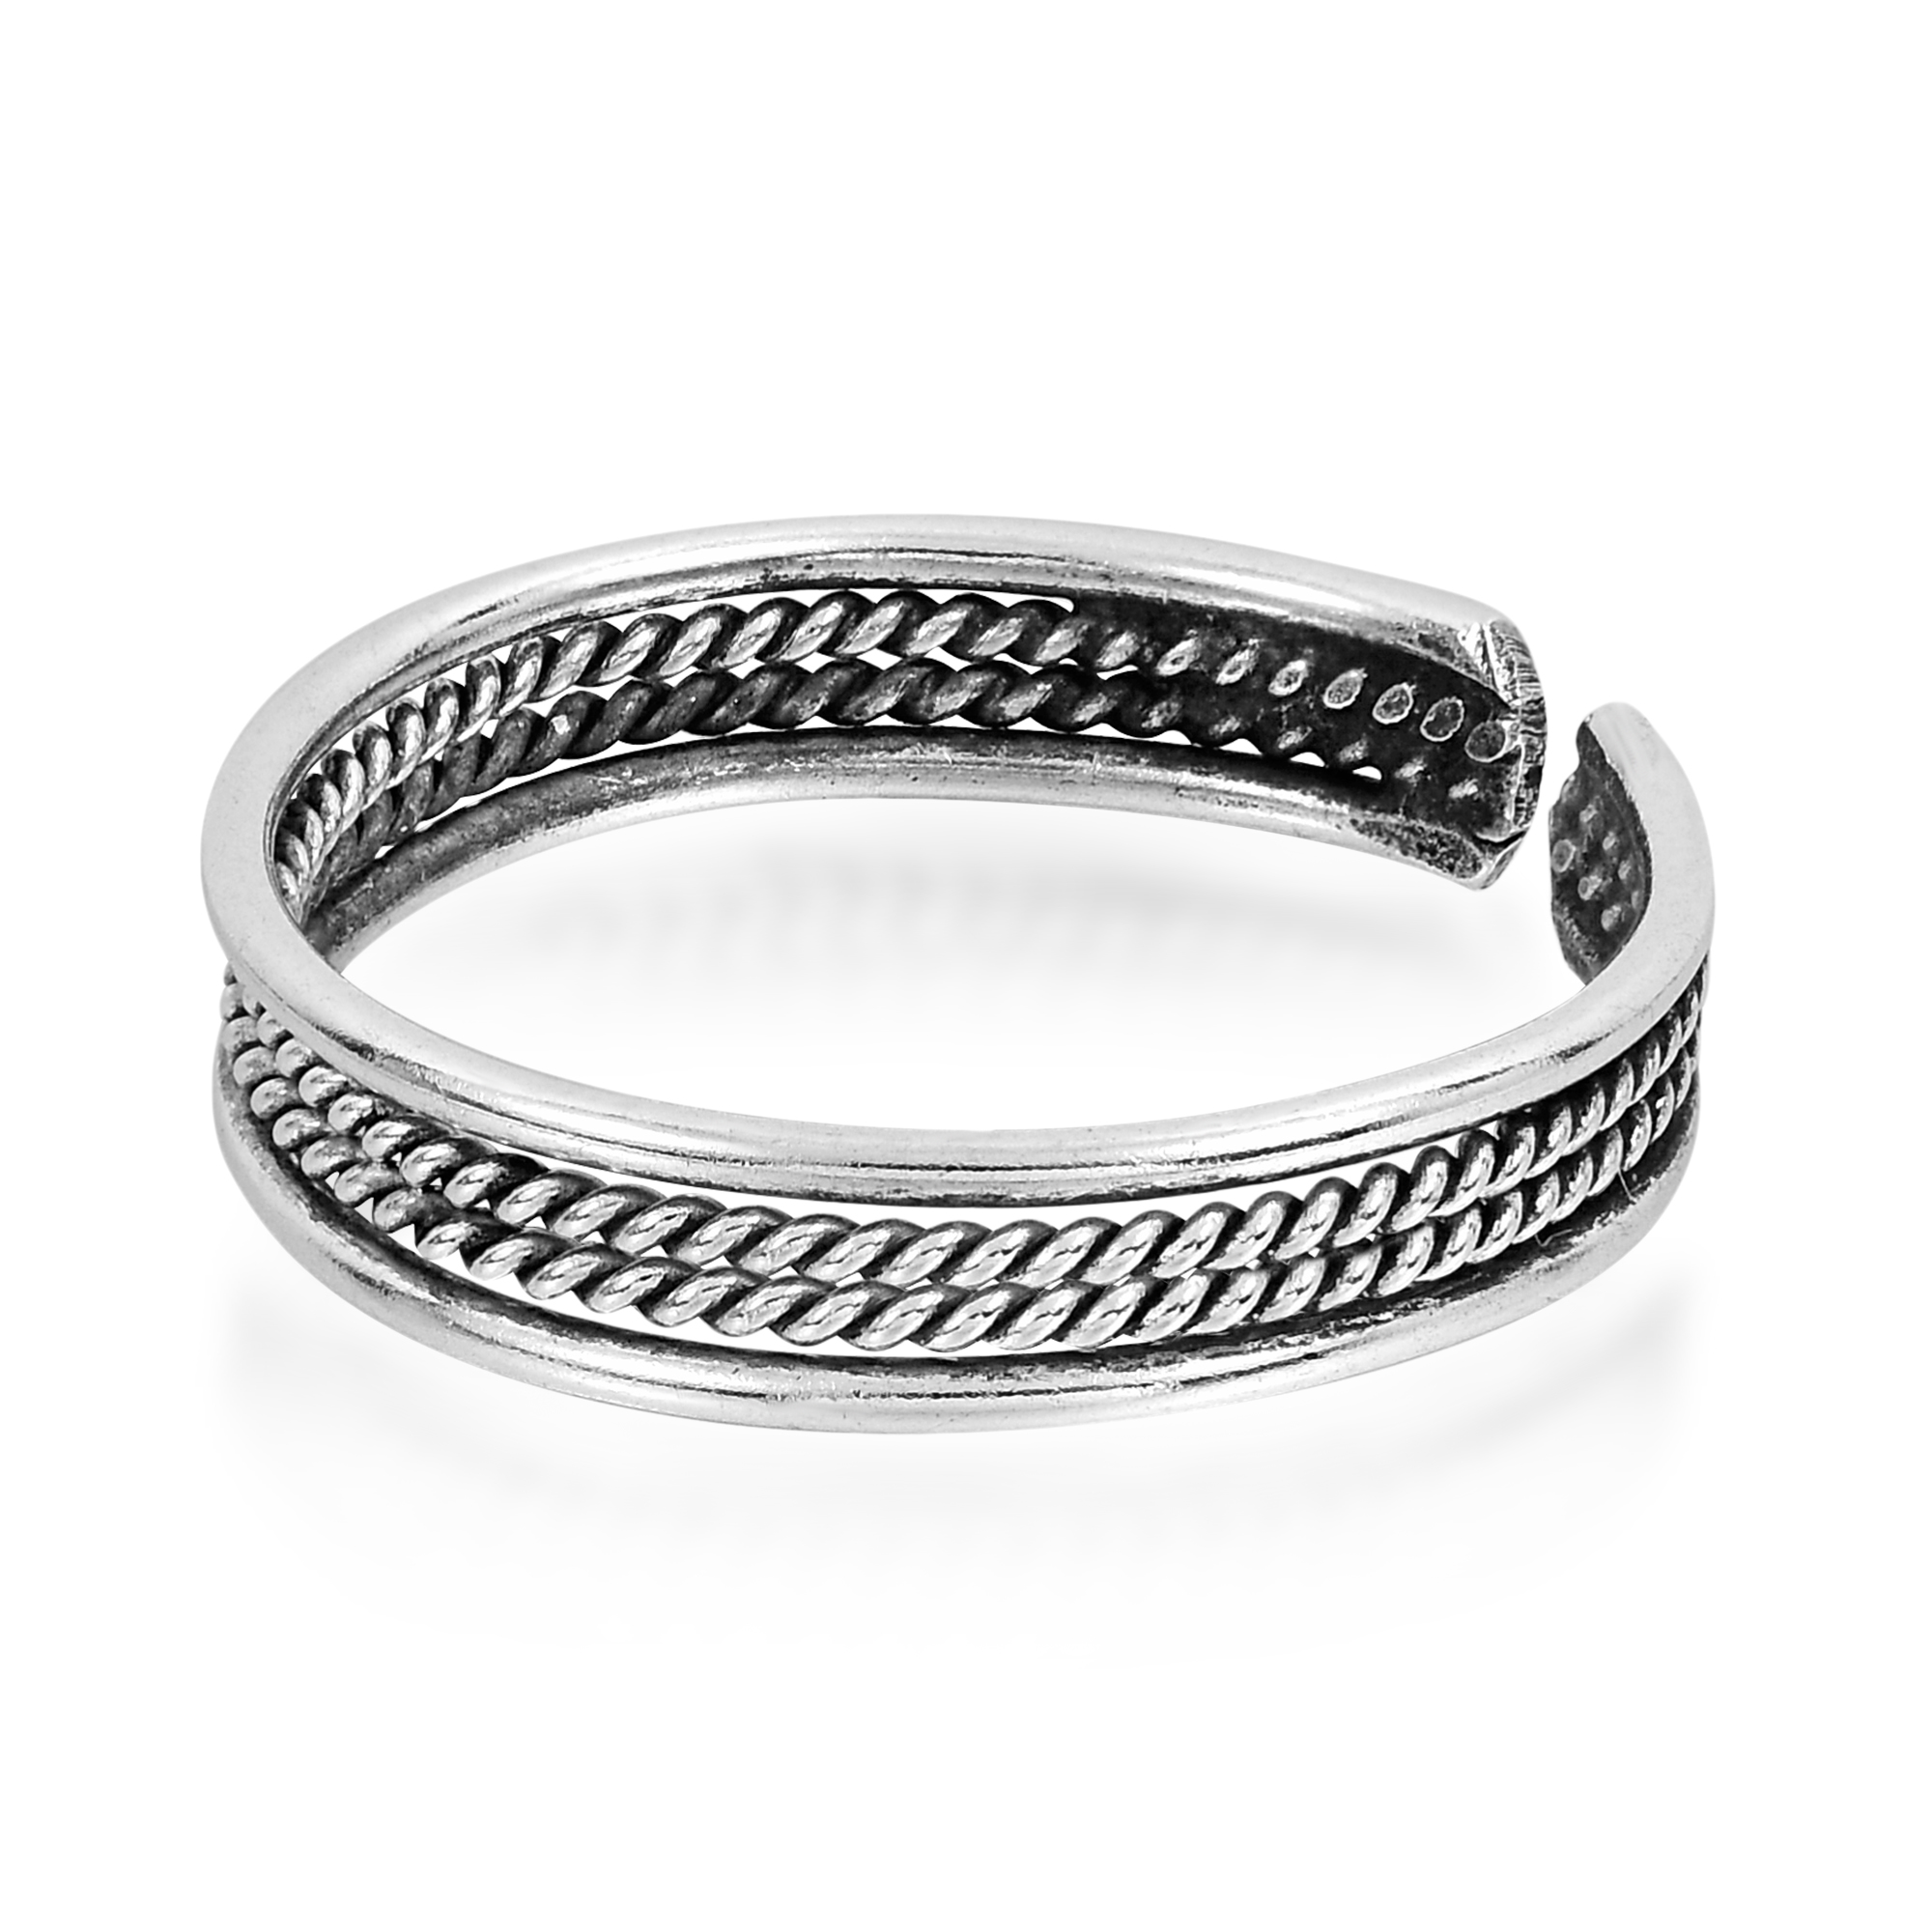 Bali Rope Design .925 Sterling Silver Toe Ring